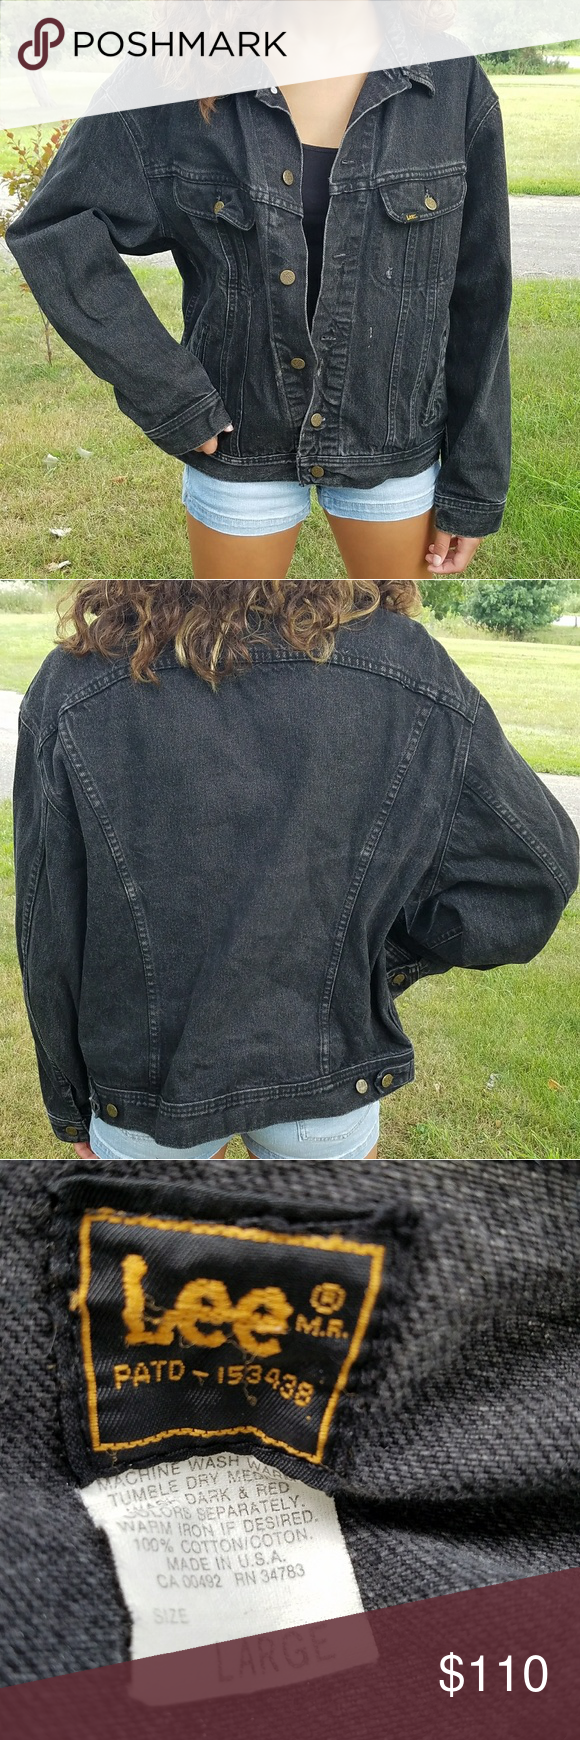 9c0520e9727 Vintage Lee Jean Jacket Unisex black denim 100% cotton men s size large